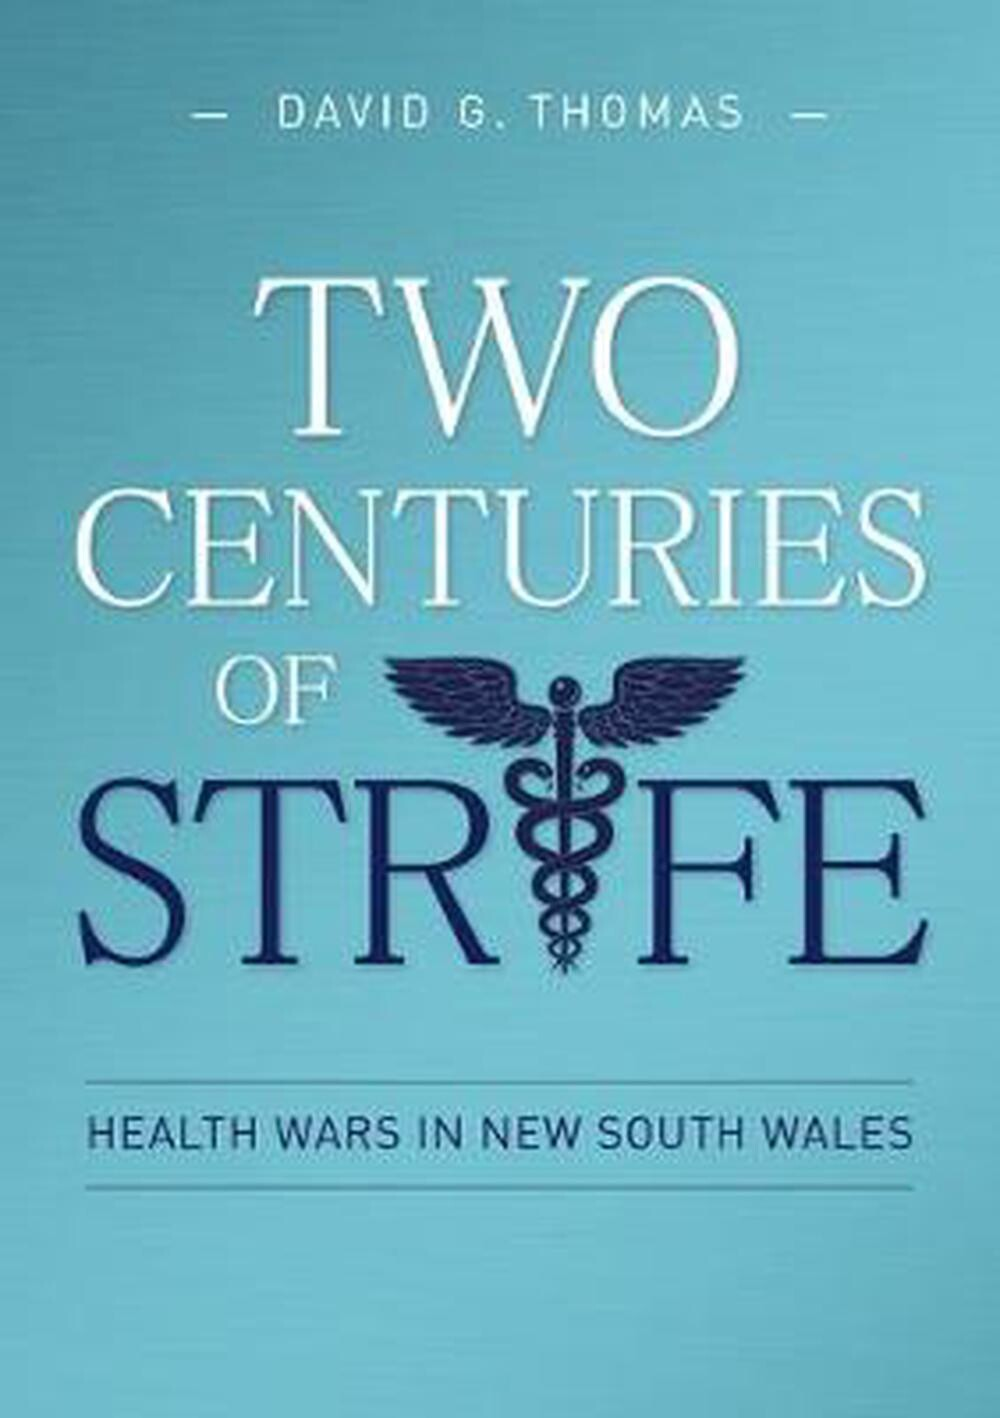 Two centuries of strife: Health Wars in New South Wales*